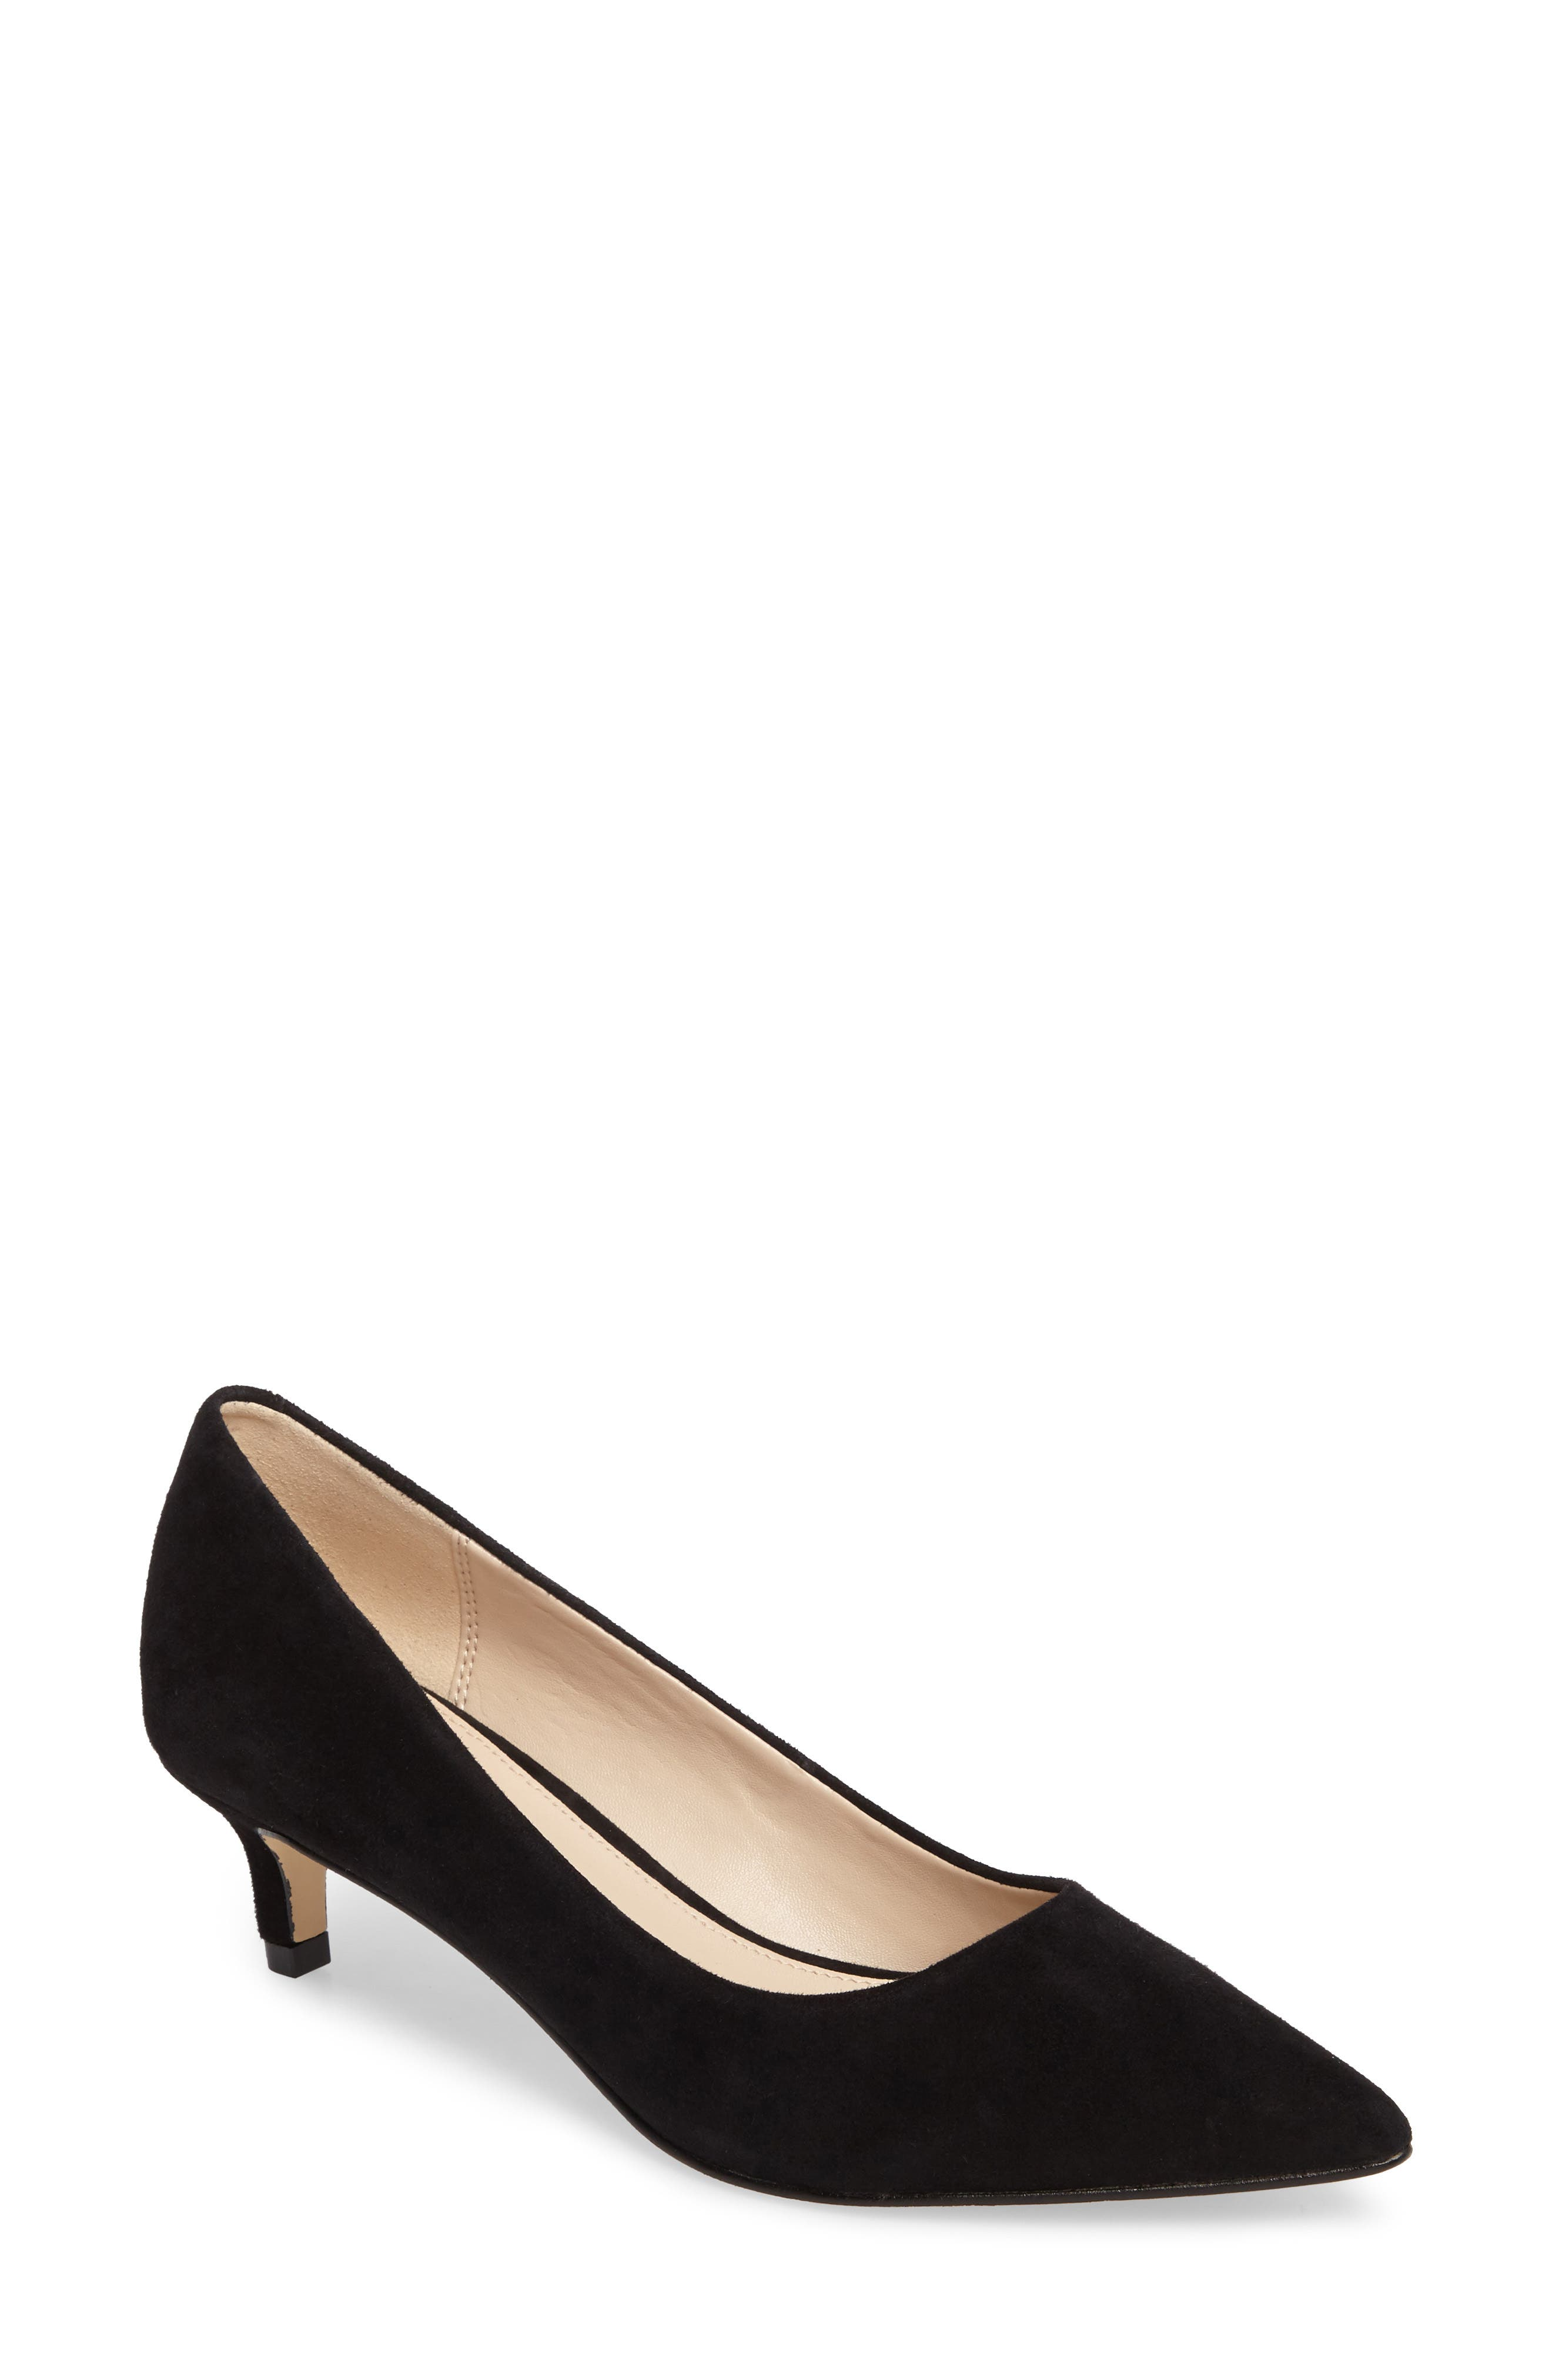 Dena Pointy Toe Pump,                             Main thumbnail 1, color,                             Black Leather